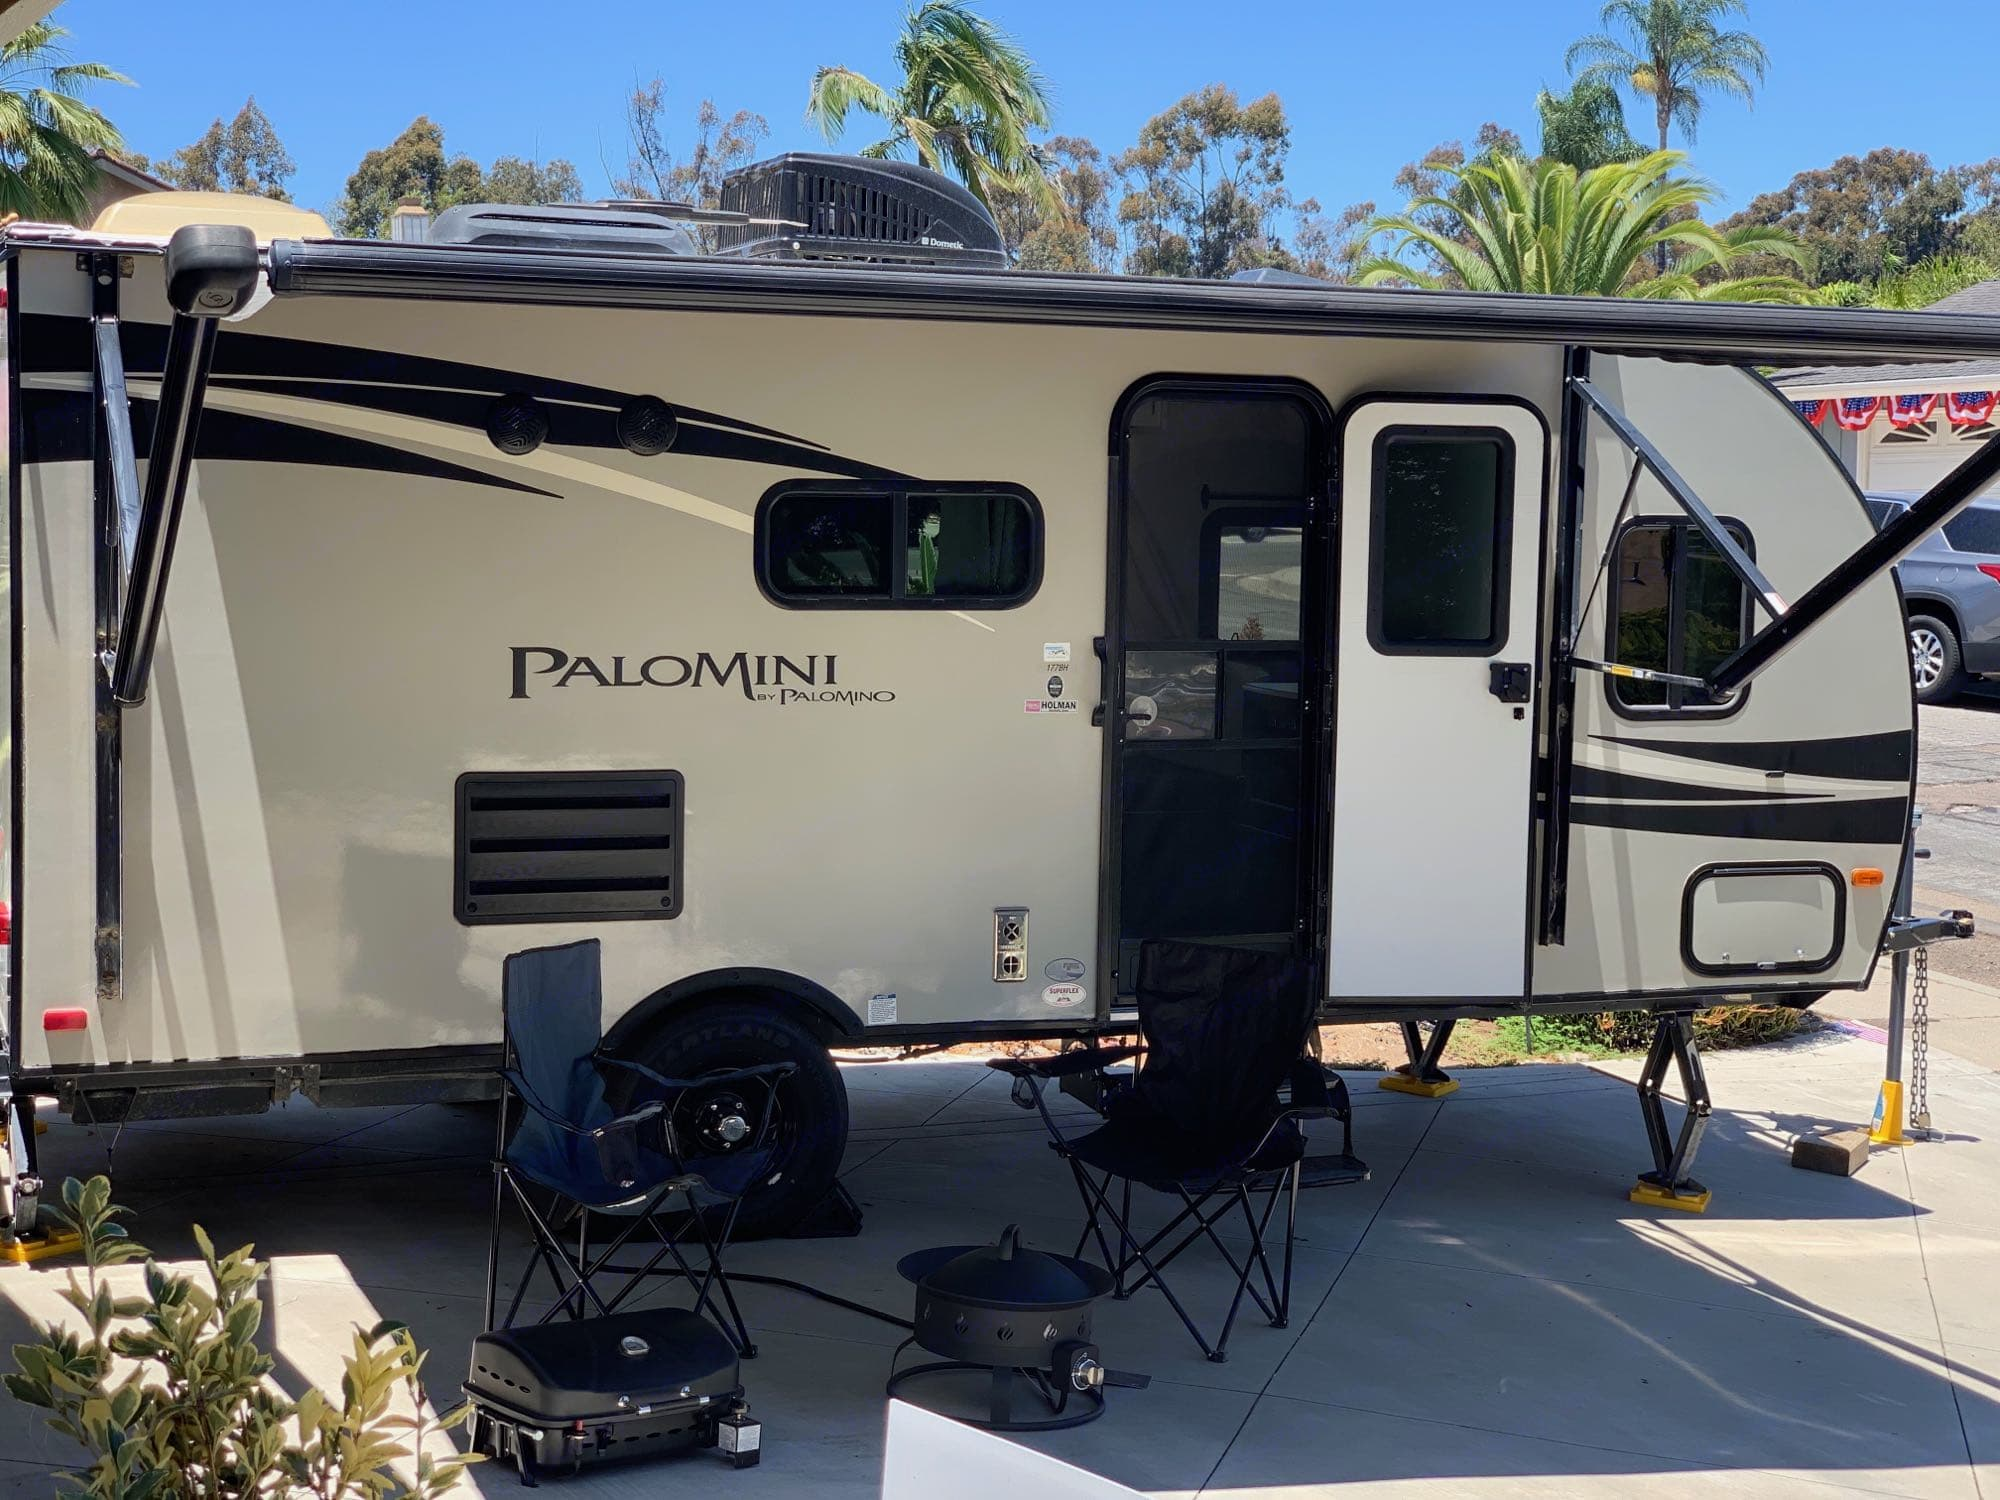 Camping grill, gas fire ring, chairs (3 adult size, 1 child size included), and the spacious, LED-lit awning.. Palomino Palomini 2016